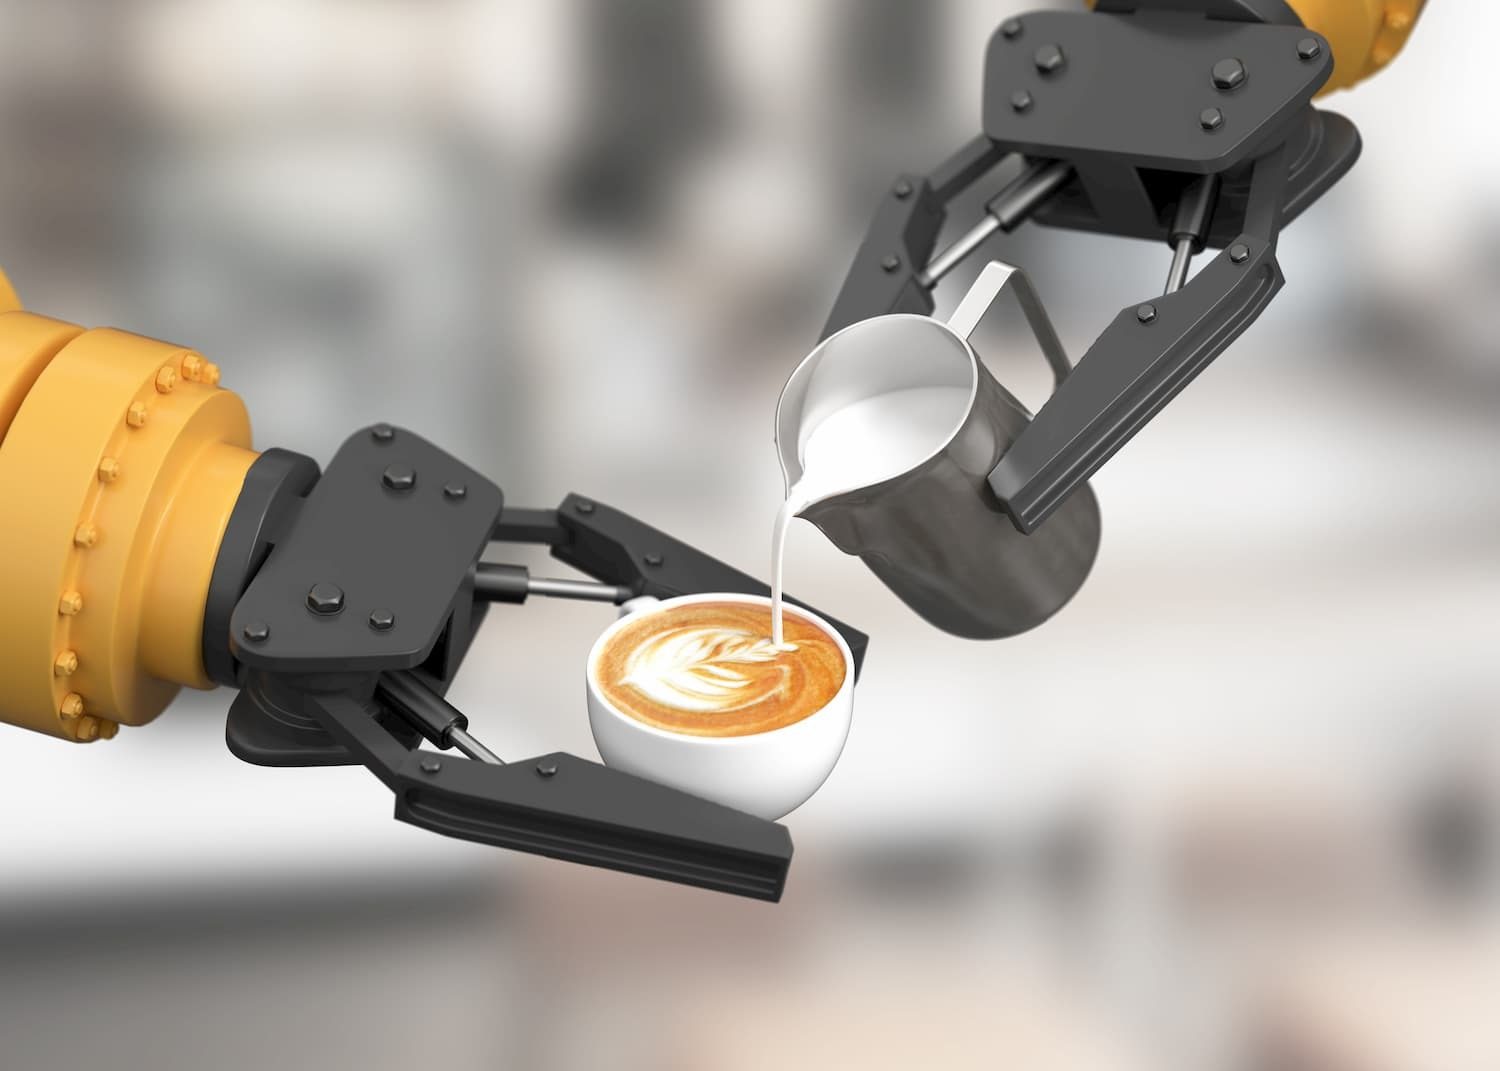 Dealing with Digital Disruption: How the coffee industry is using it to its advantage